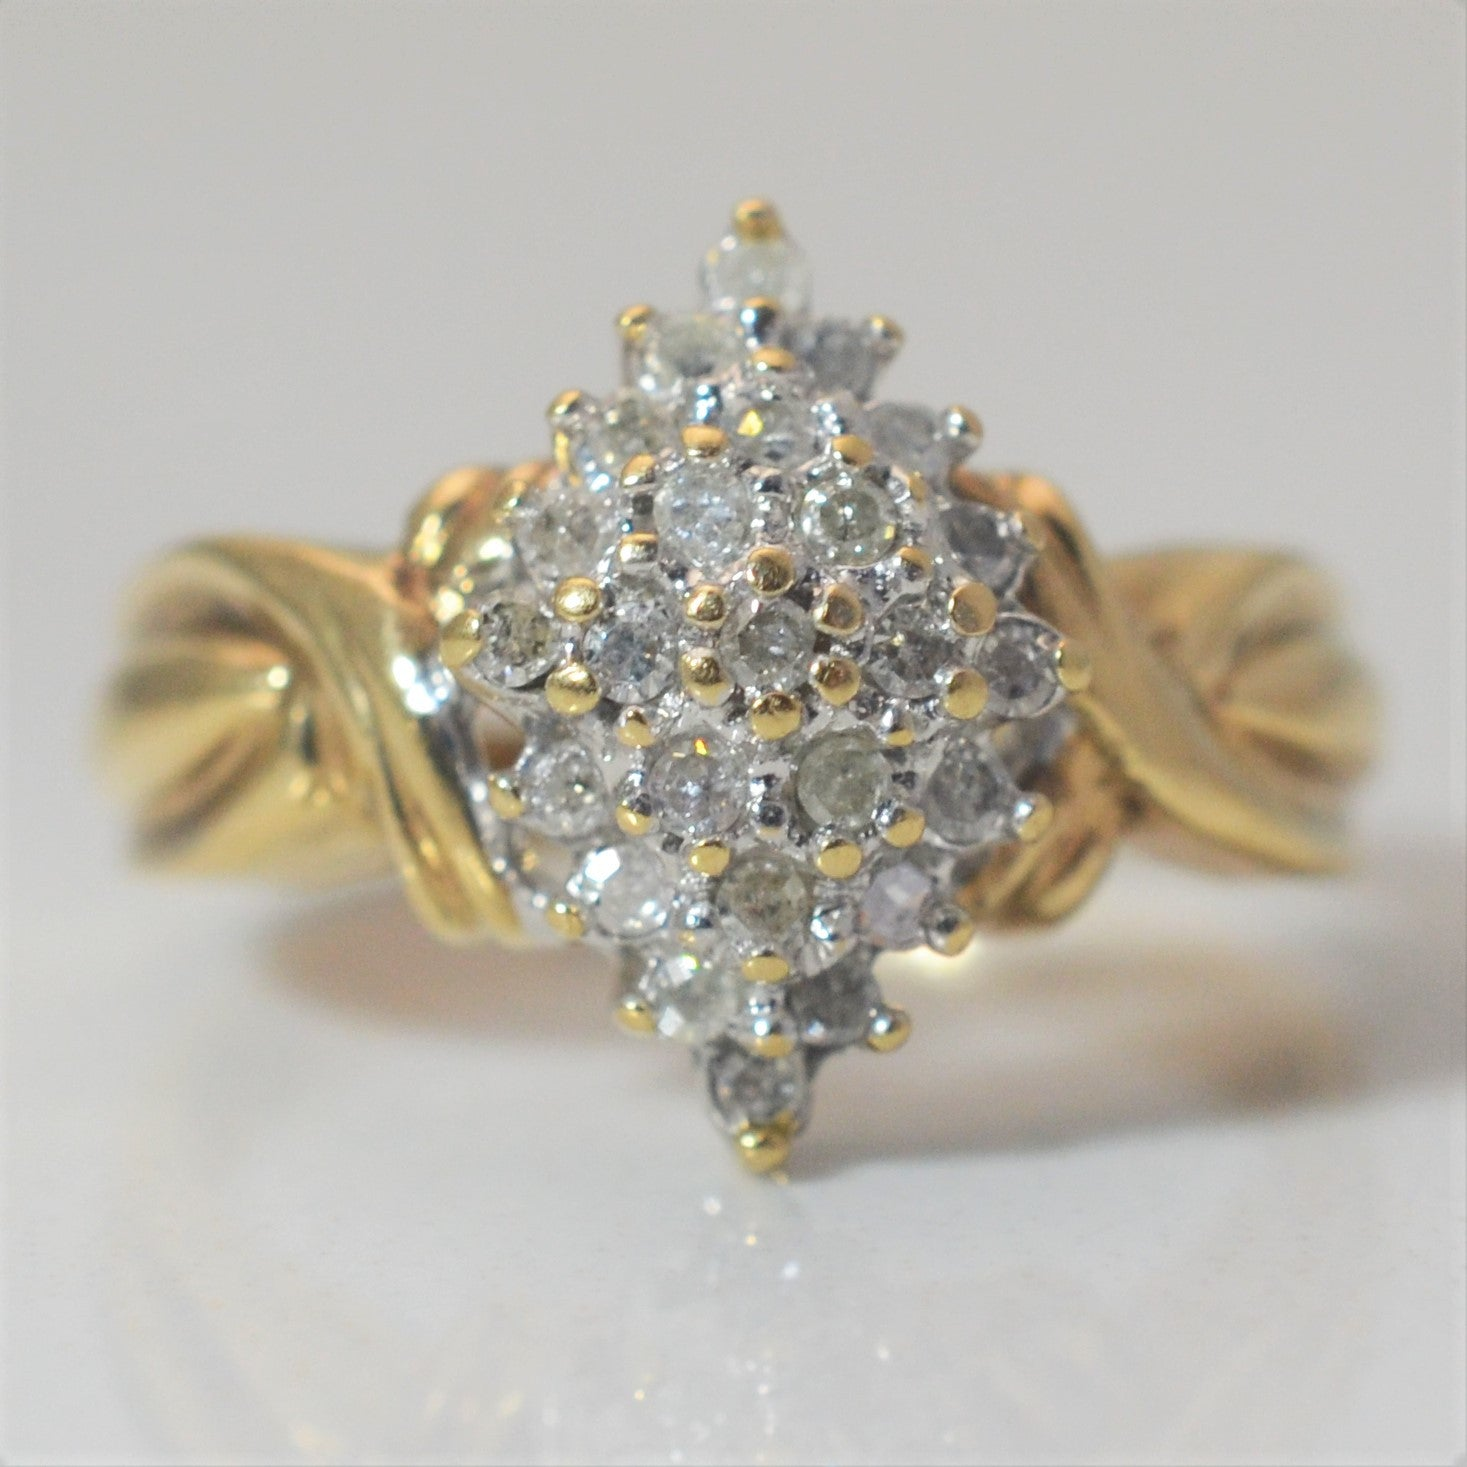 Marquise Shaped Diamond Cluster Ring | 0.22 ctw, SZ 6.75 |